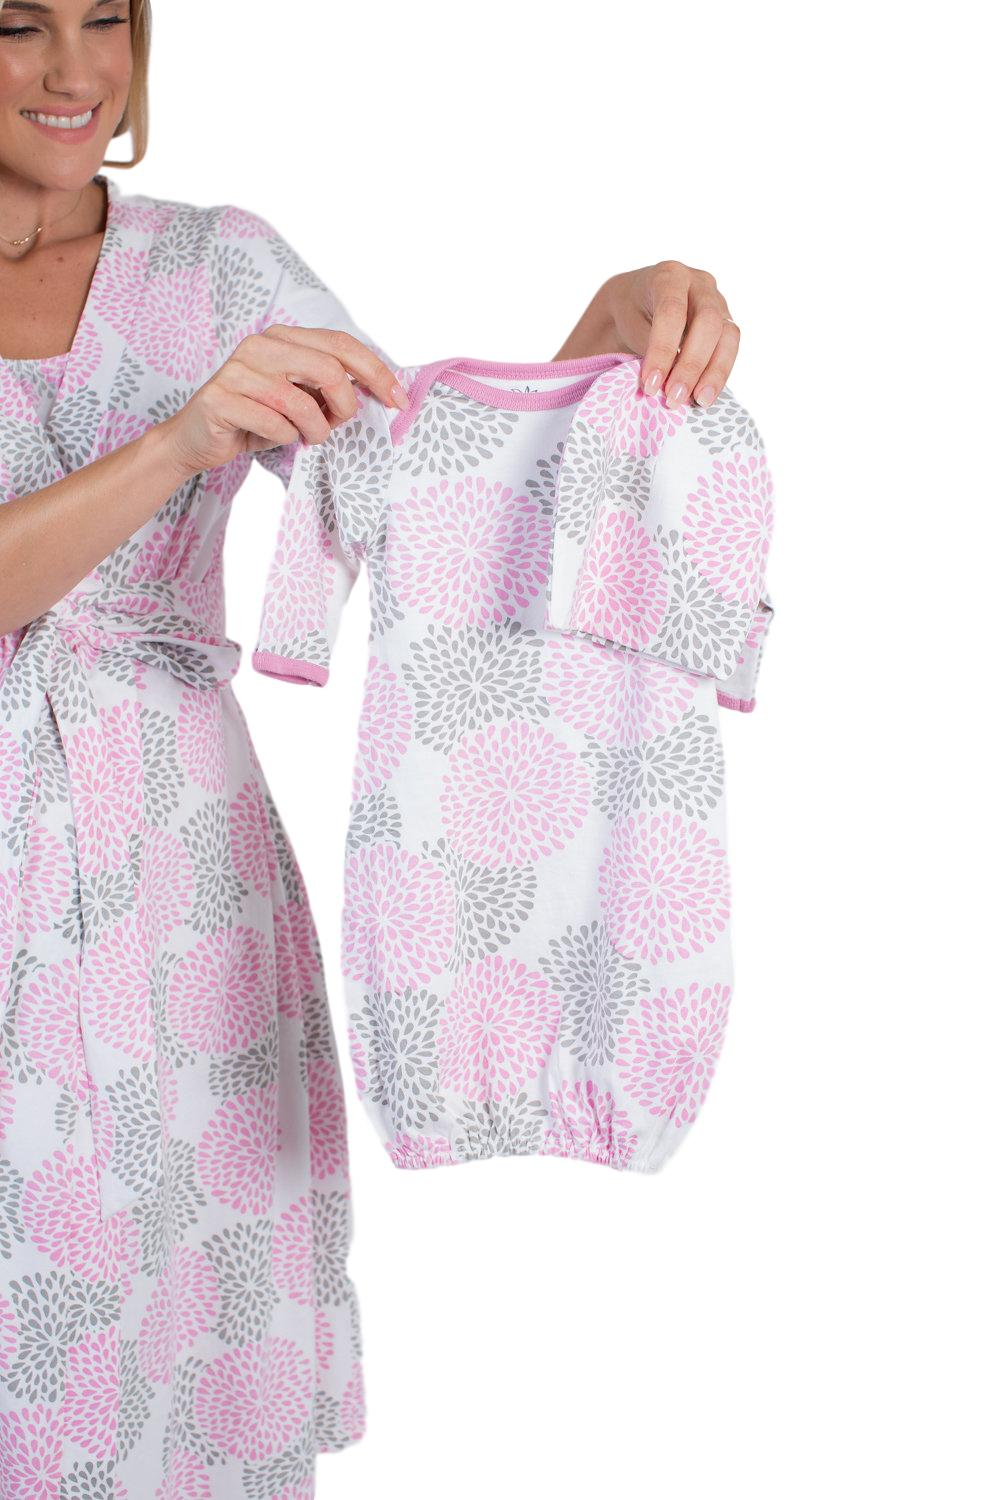 Lilly Maternity/Nursing Nightgown, Robe & Baby Receiving Gown Set